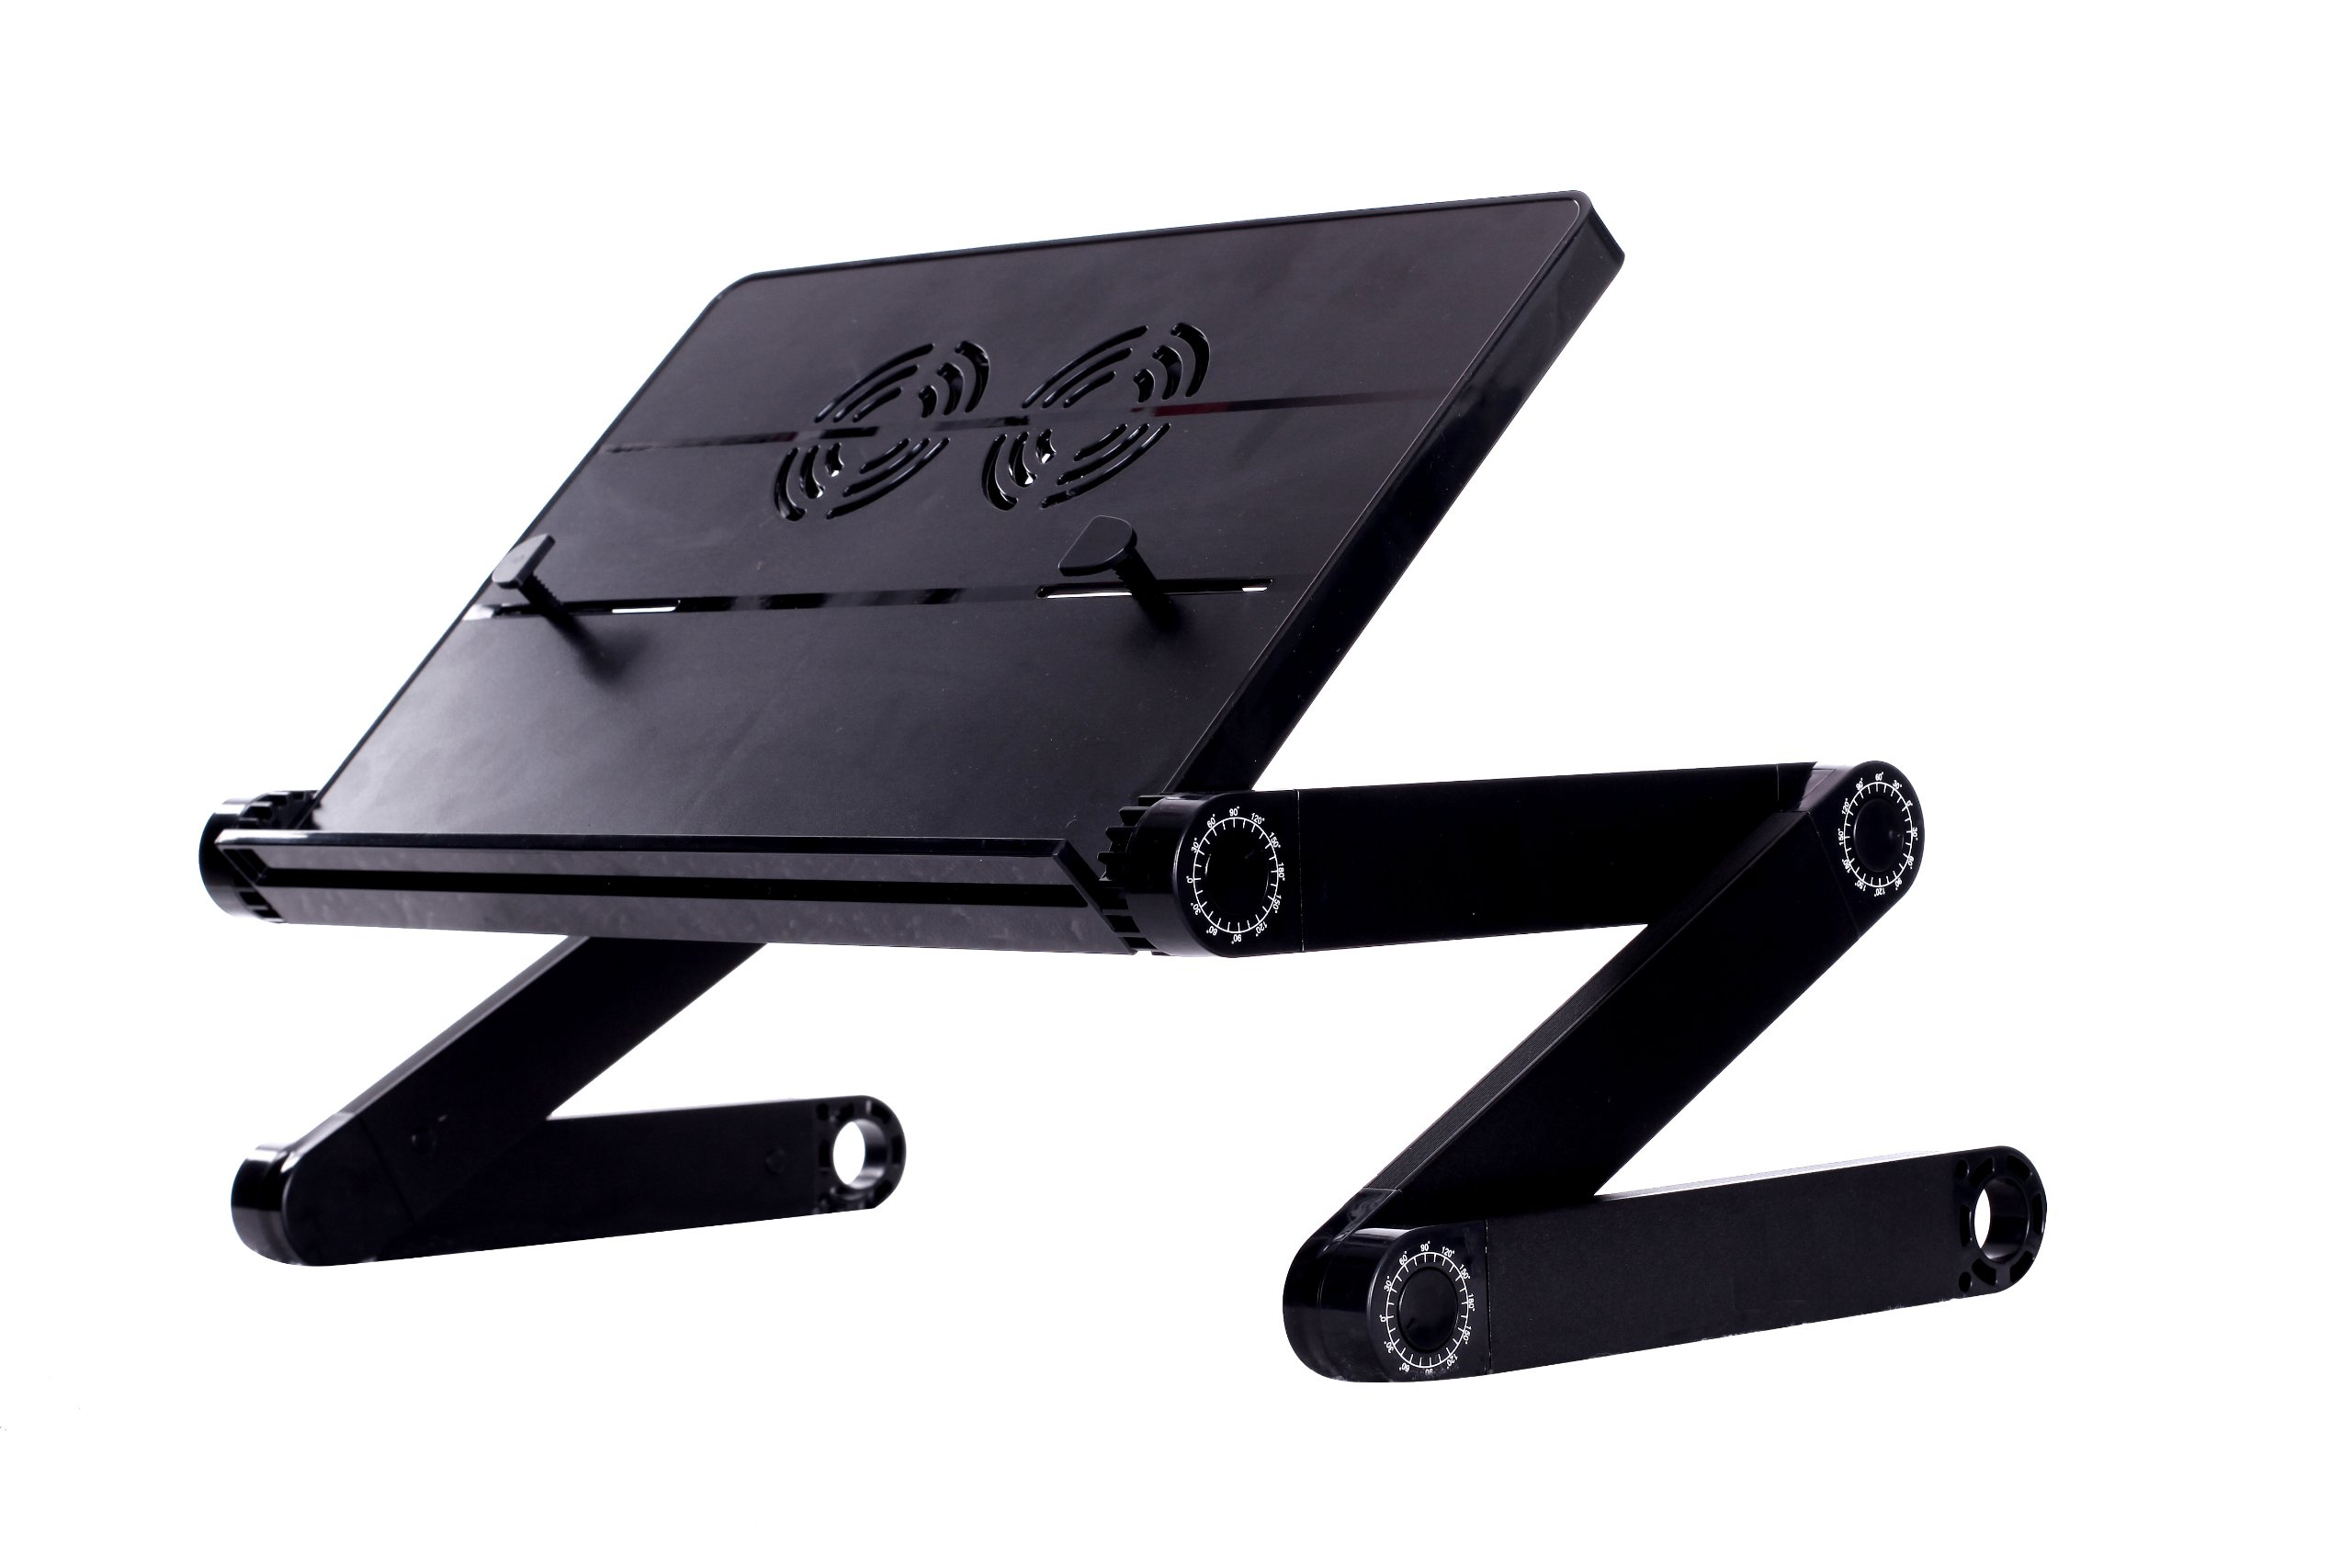 Portable Adjustable Height and Angle Ergonomic Reading Stand, Book holder, Tablet Stand, up to 12'' Laptop Stand, Document Holder, Black